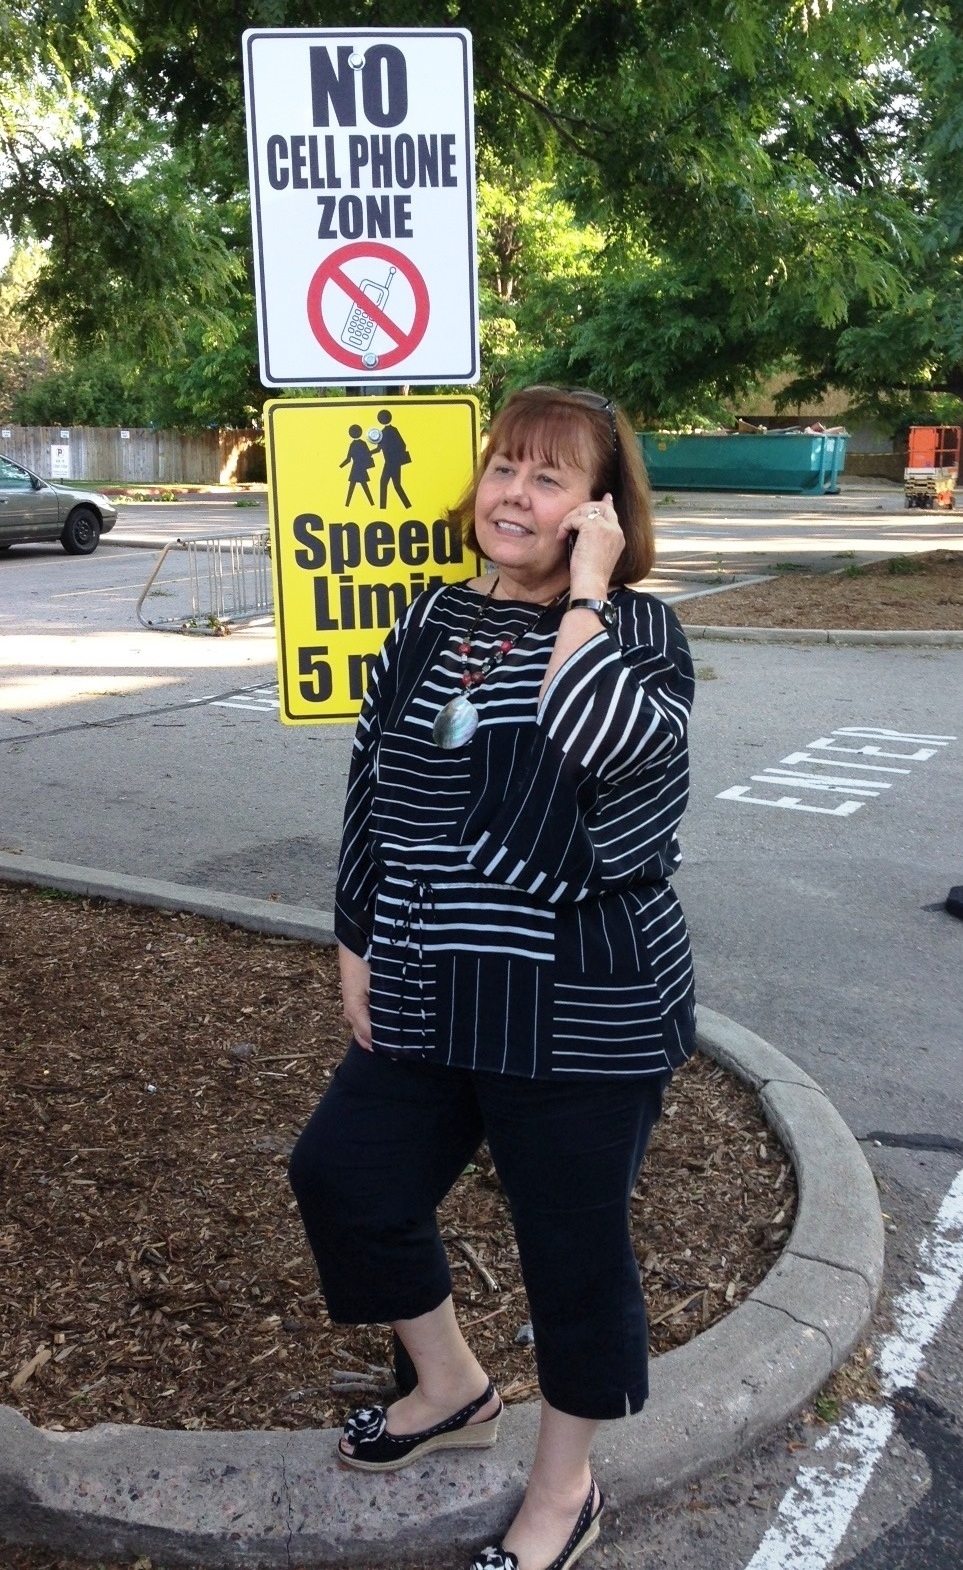 Judy-on-cell-phone-nst13.jpg